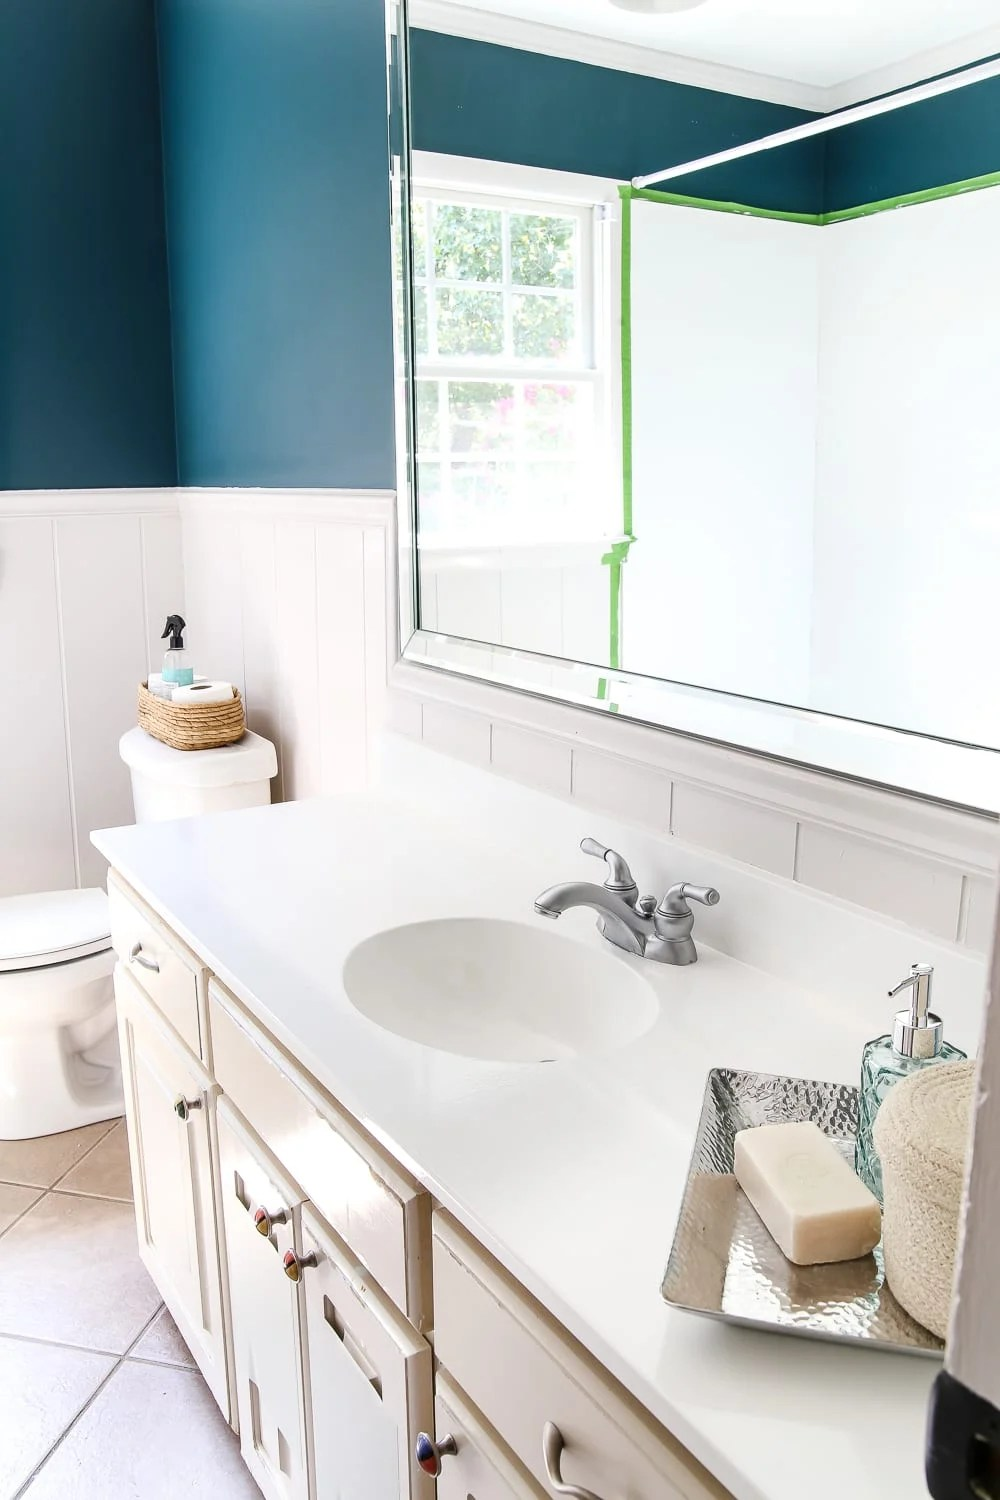 DIY Painted Bathroom Sink Countertop  Blesser House